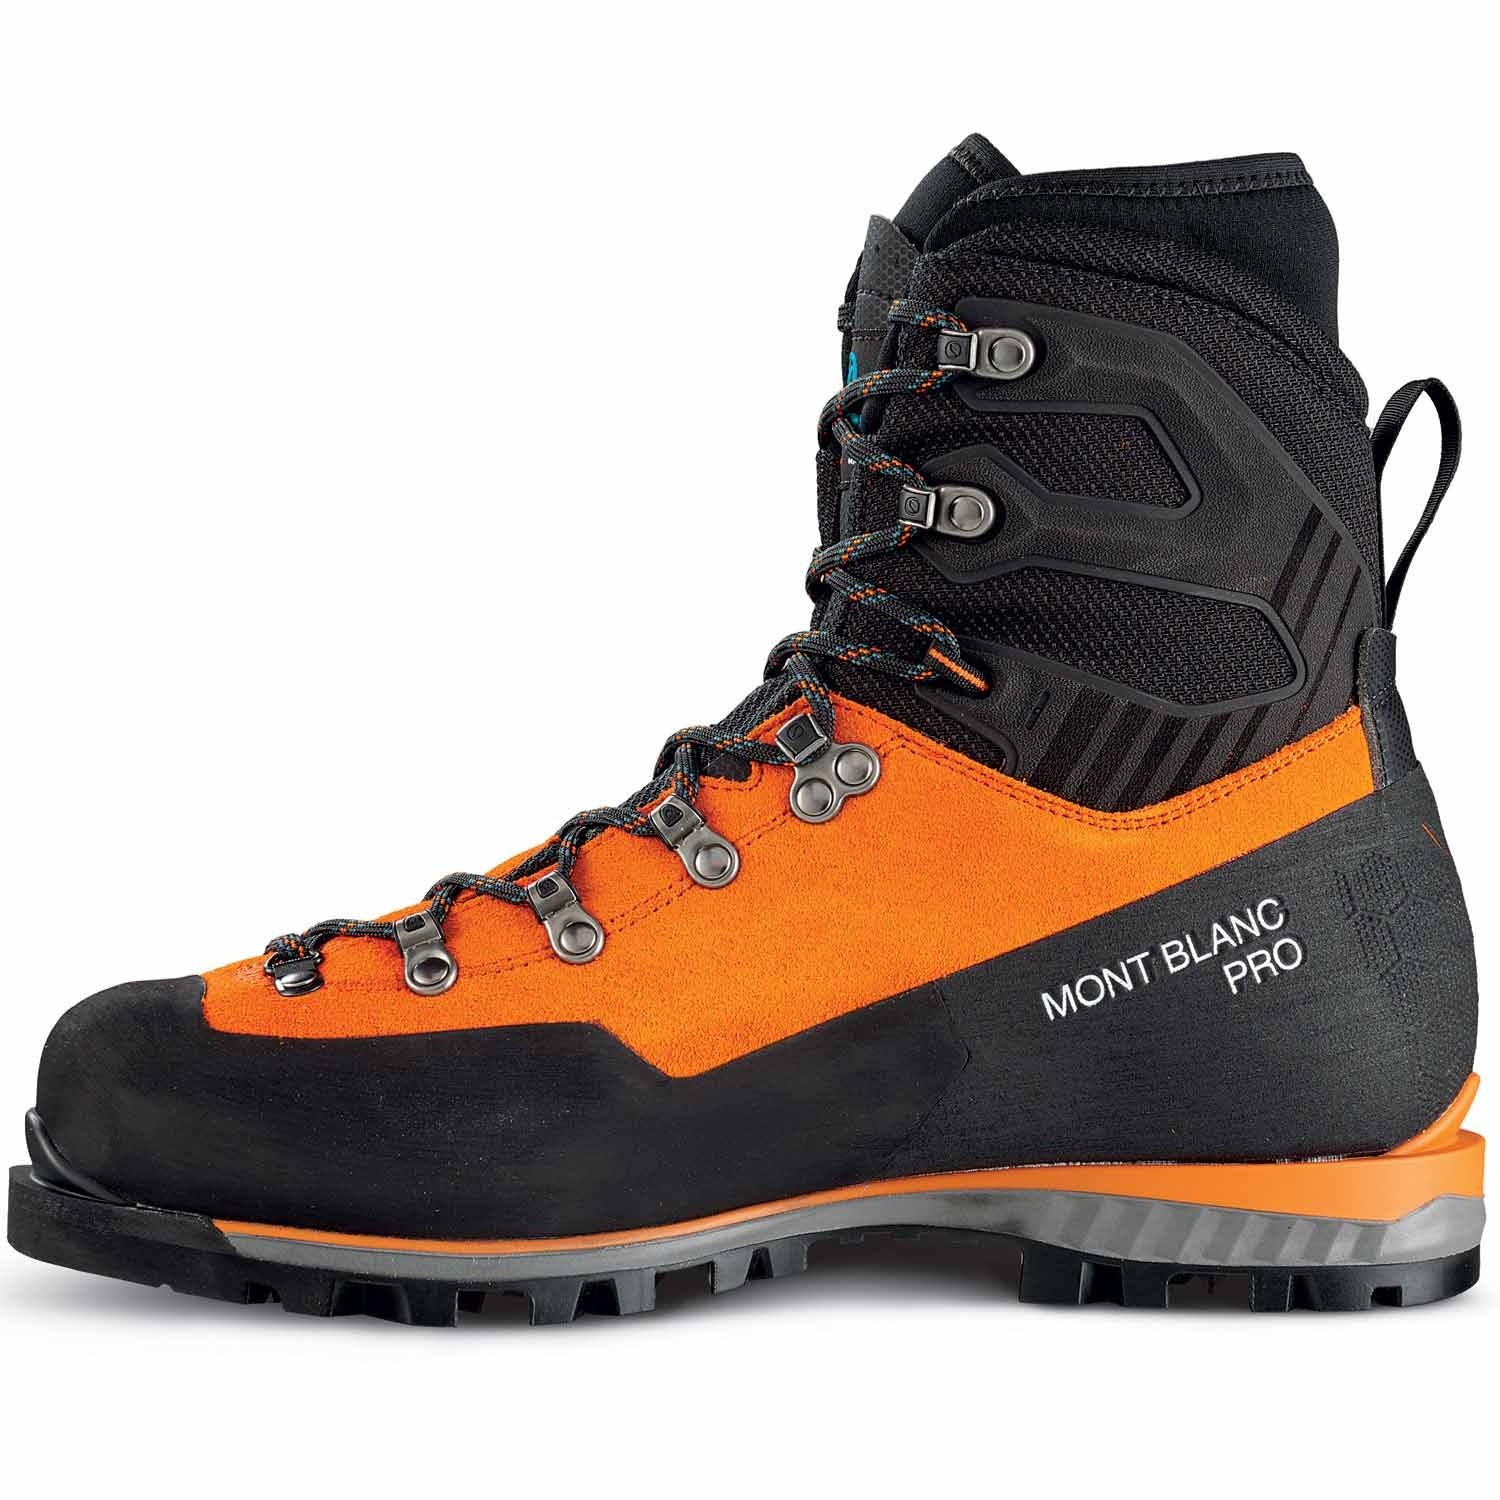 Scarpa Mont Blanc Pro GTX Mountaineering Boot